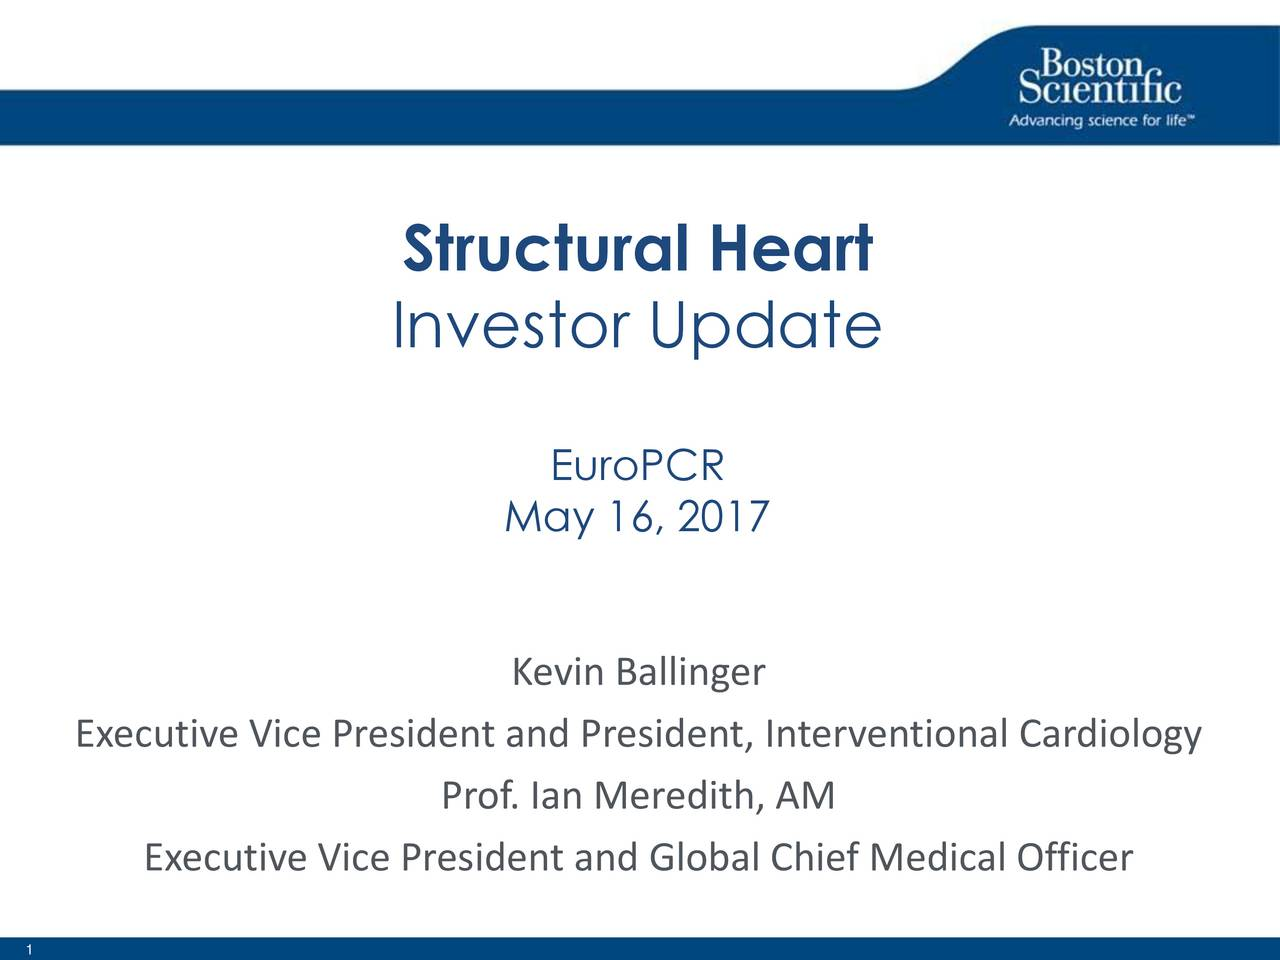 Investor Update EuroPCR May 16, 2017 Kevin Ballinger Executive Vice President and President, Interventional Cardiology Prof. Ian Meredith, AM Executive Vice President and Global Chief Medical Officer